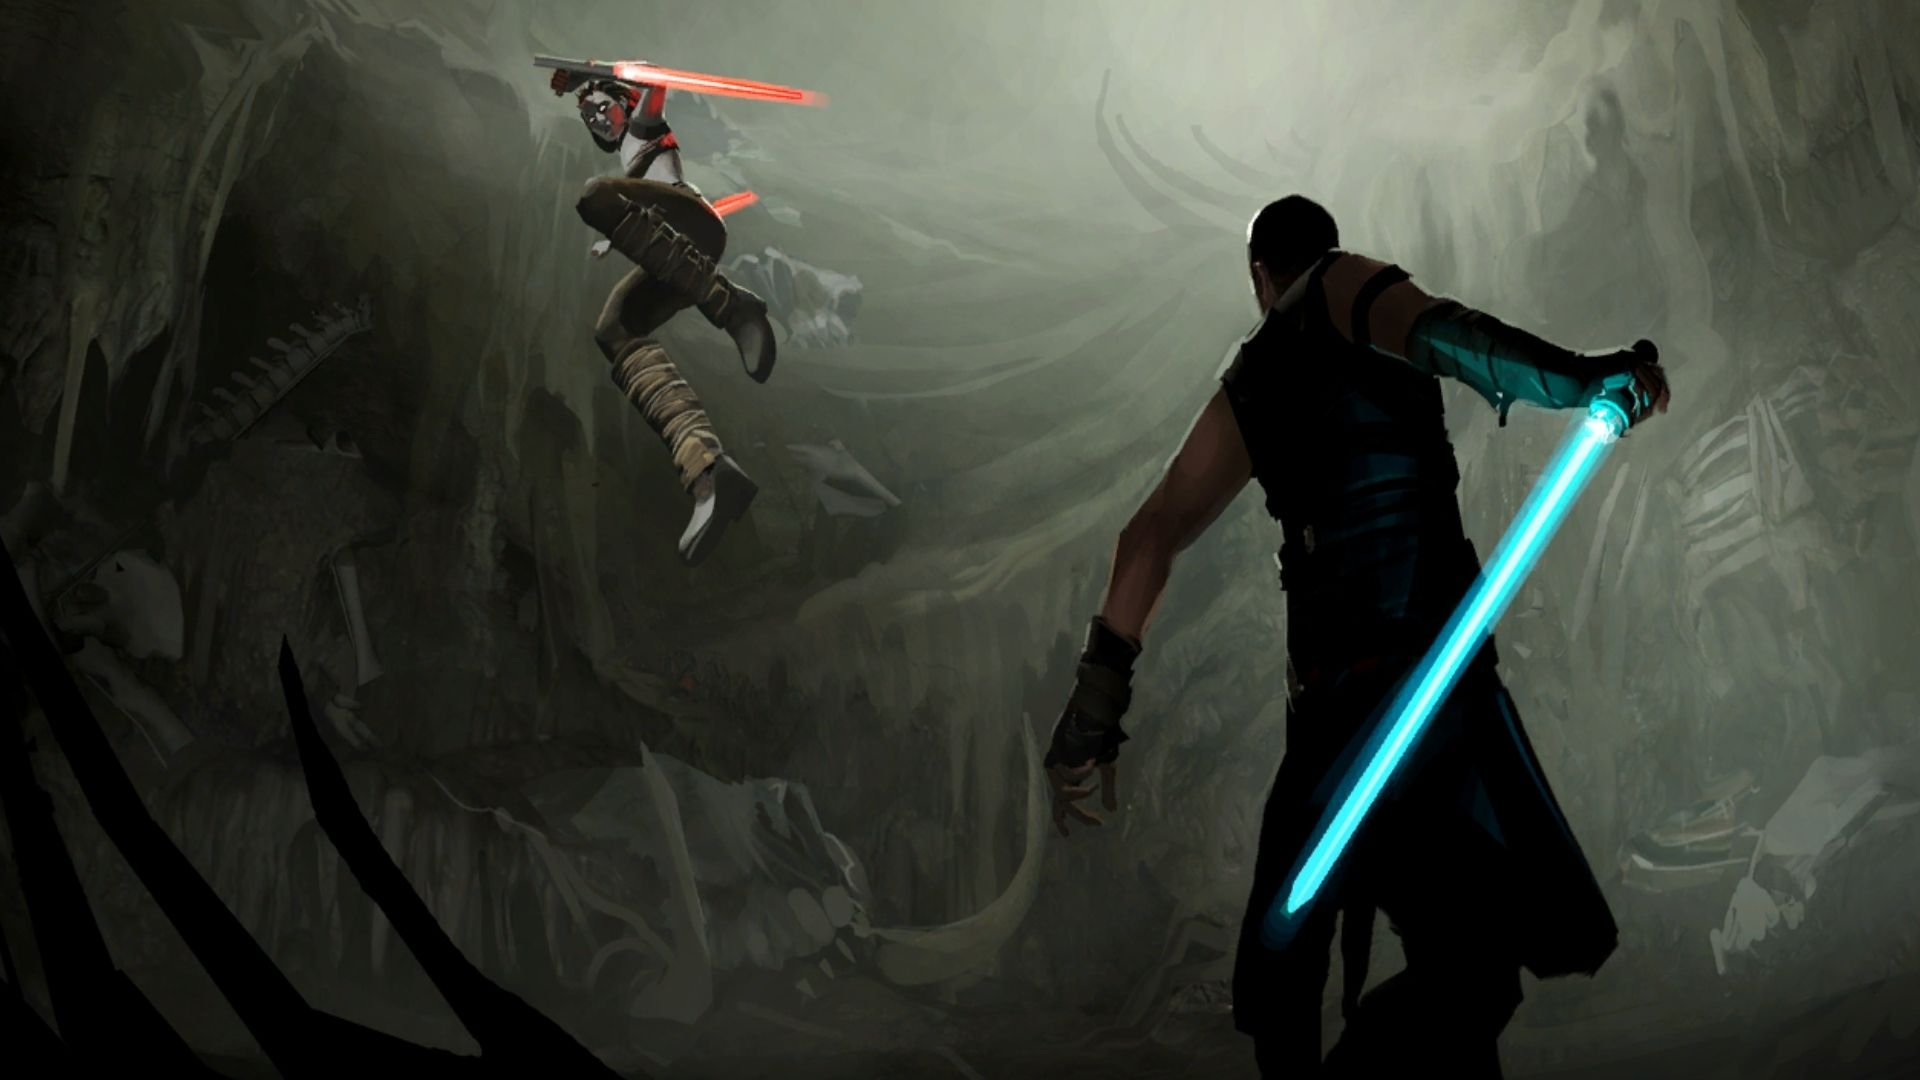 Free download Star wars sith jedi battle swords wallpapers ForWallpapercom [1920x1080] for your Desktop, Mobile & Tablet